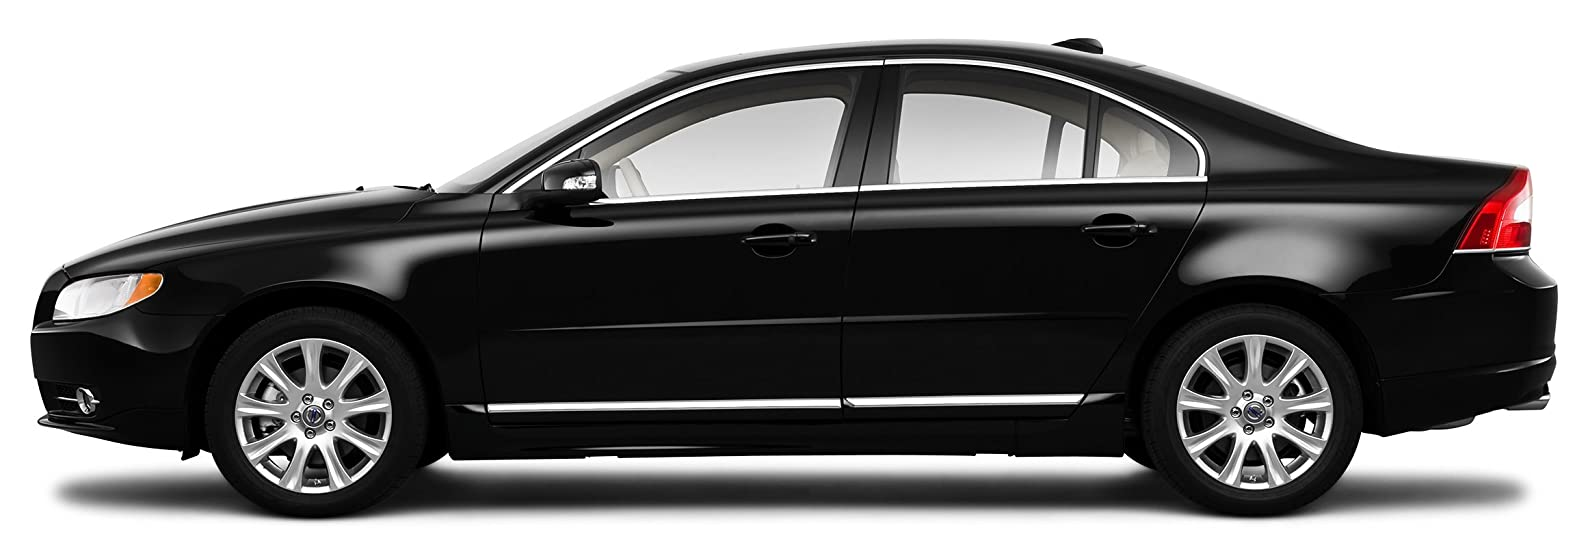 2010 Volvo S80 Reviews Images And Specs Vehicles 2001 Battery Location